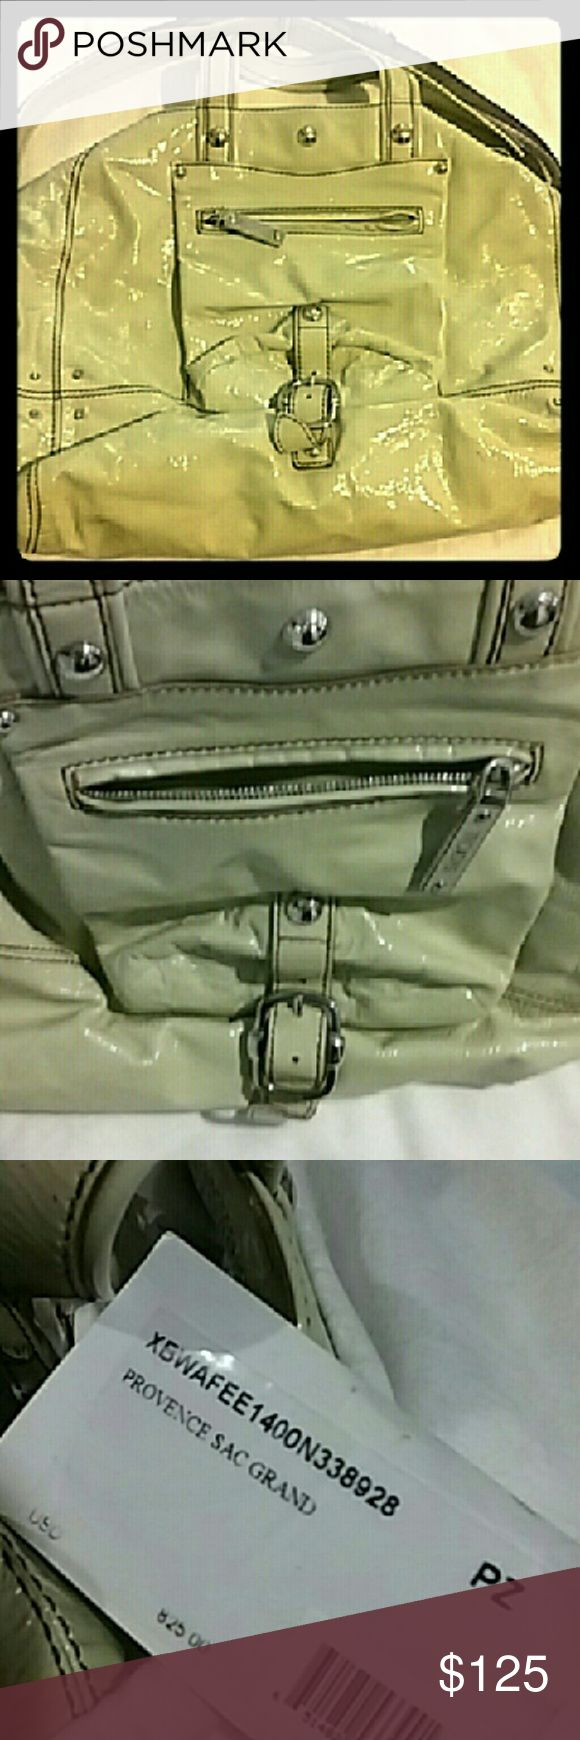 Shiny Tod's ivory hobo, like new! Shiny coated tote bag with multiple strap options by Tod's in off-white, see photos for exact shade. Signature chunky silver hardware, outside pocket with zipper and buckle, inside zip-pocket. Lining is in lavender emblazoned with Tod's logo. Never used, comes with dust bag, and original tag with price. See second post for more photos. Tod's Bags Hobos